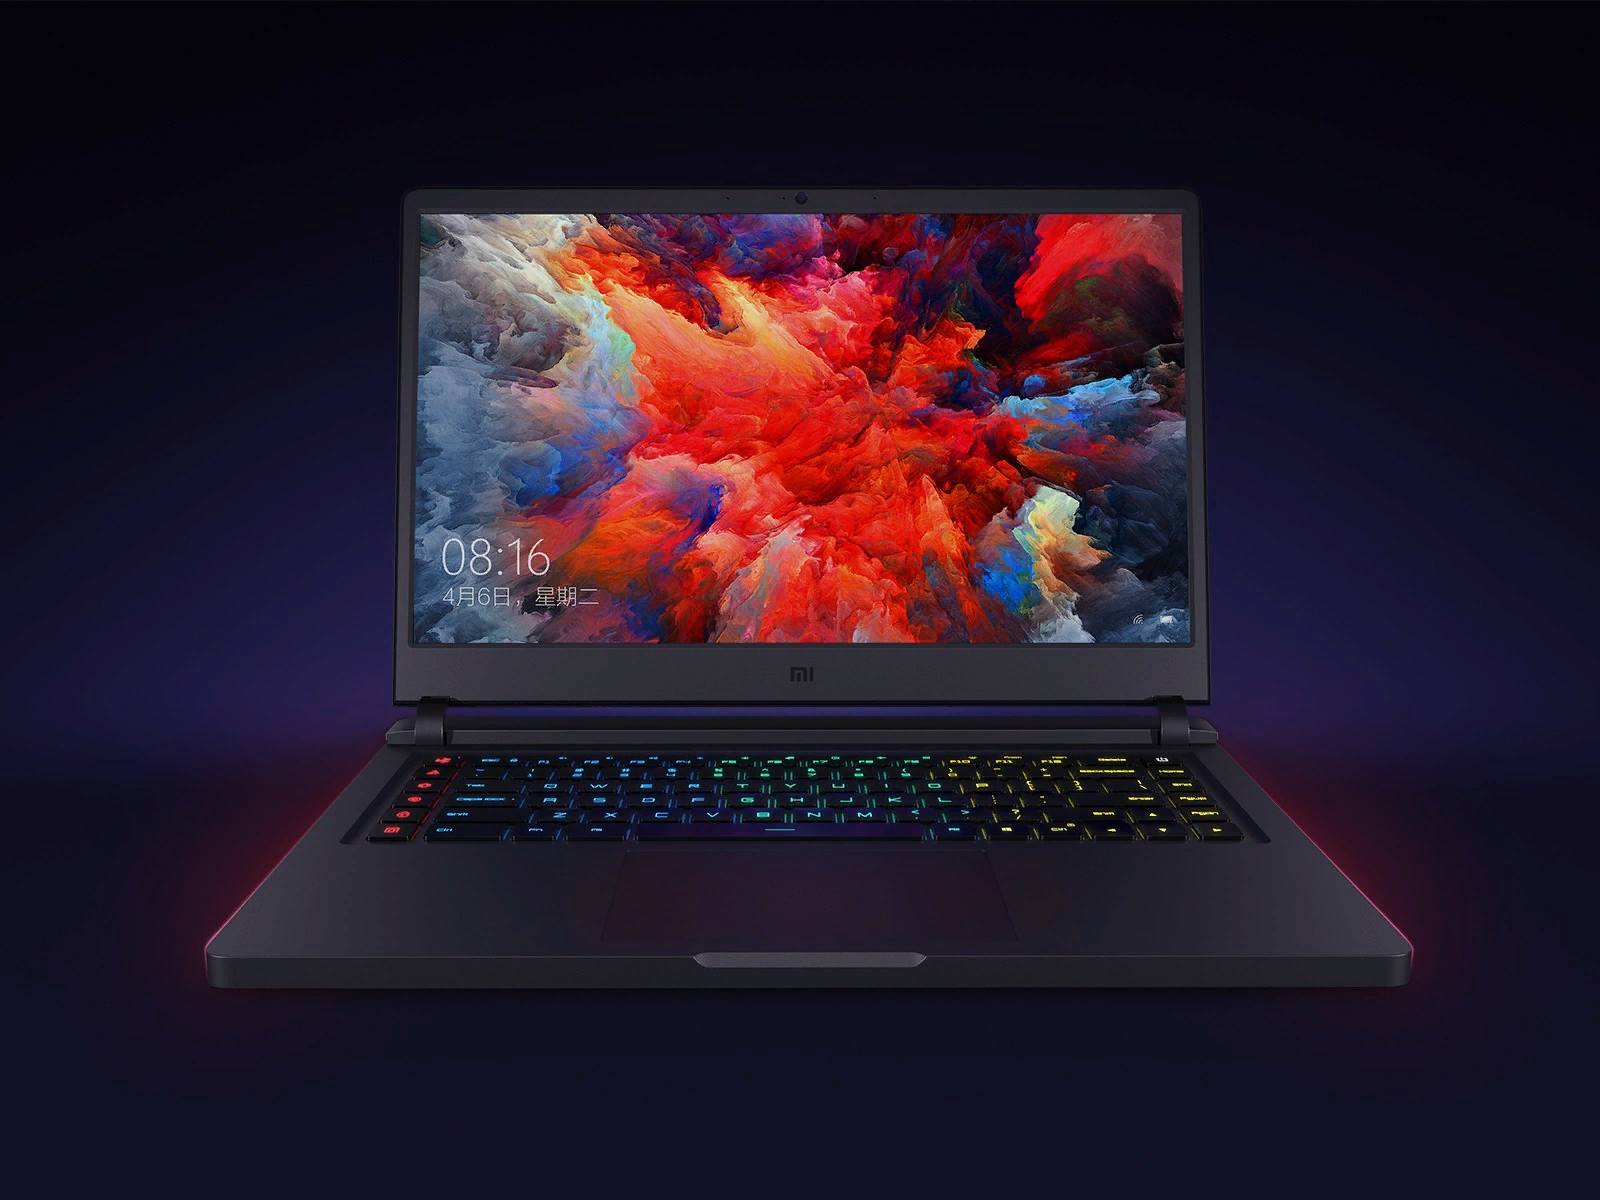 Рис. 3. Модель Mi Gaming Laptop от Xiaomi.